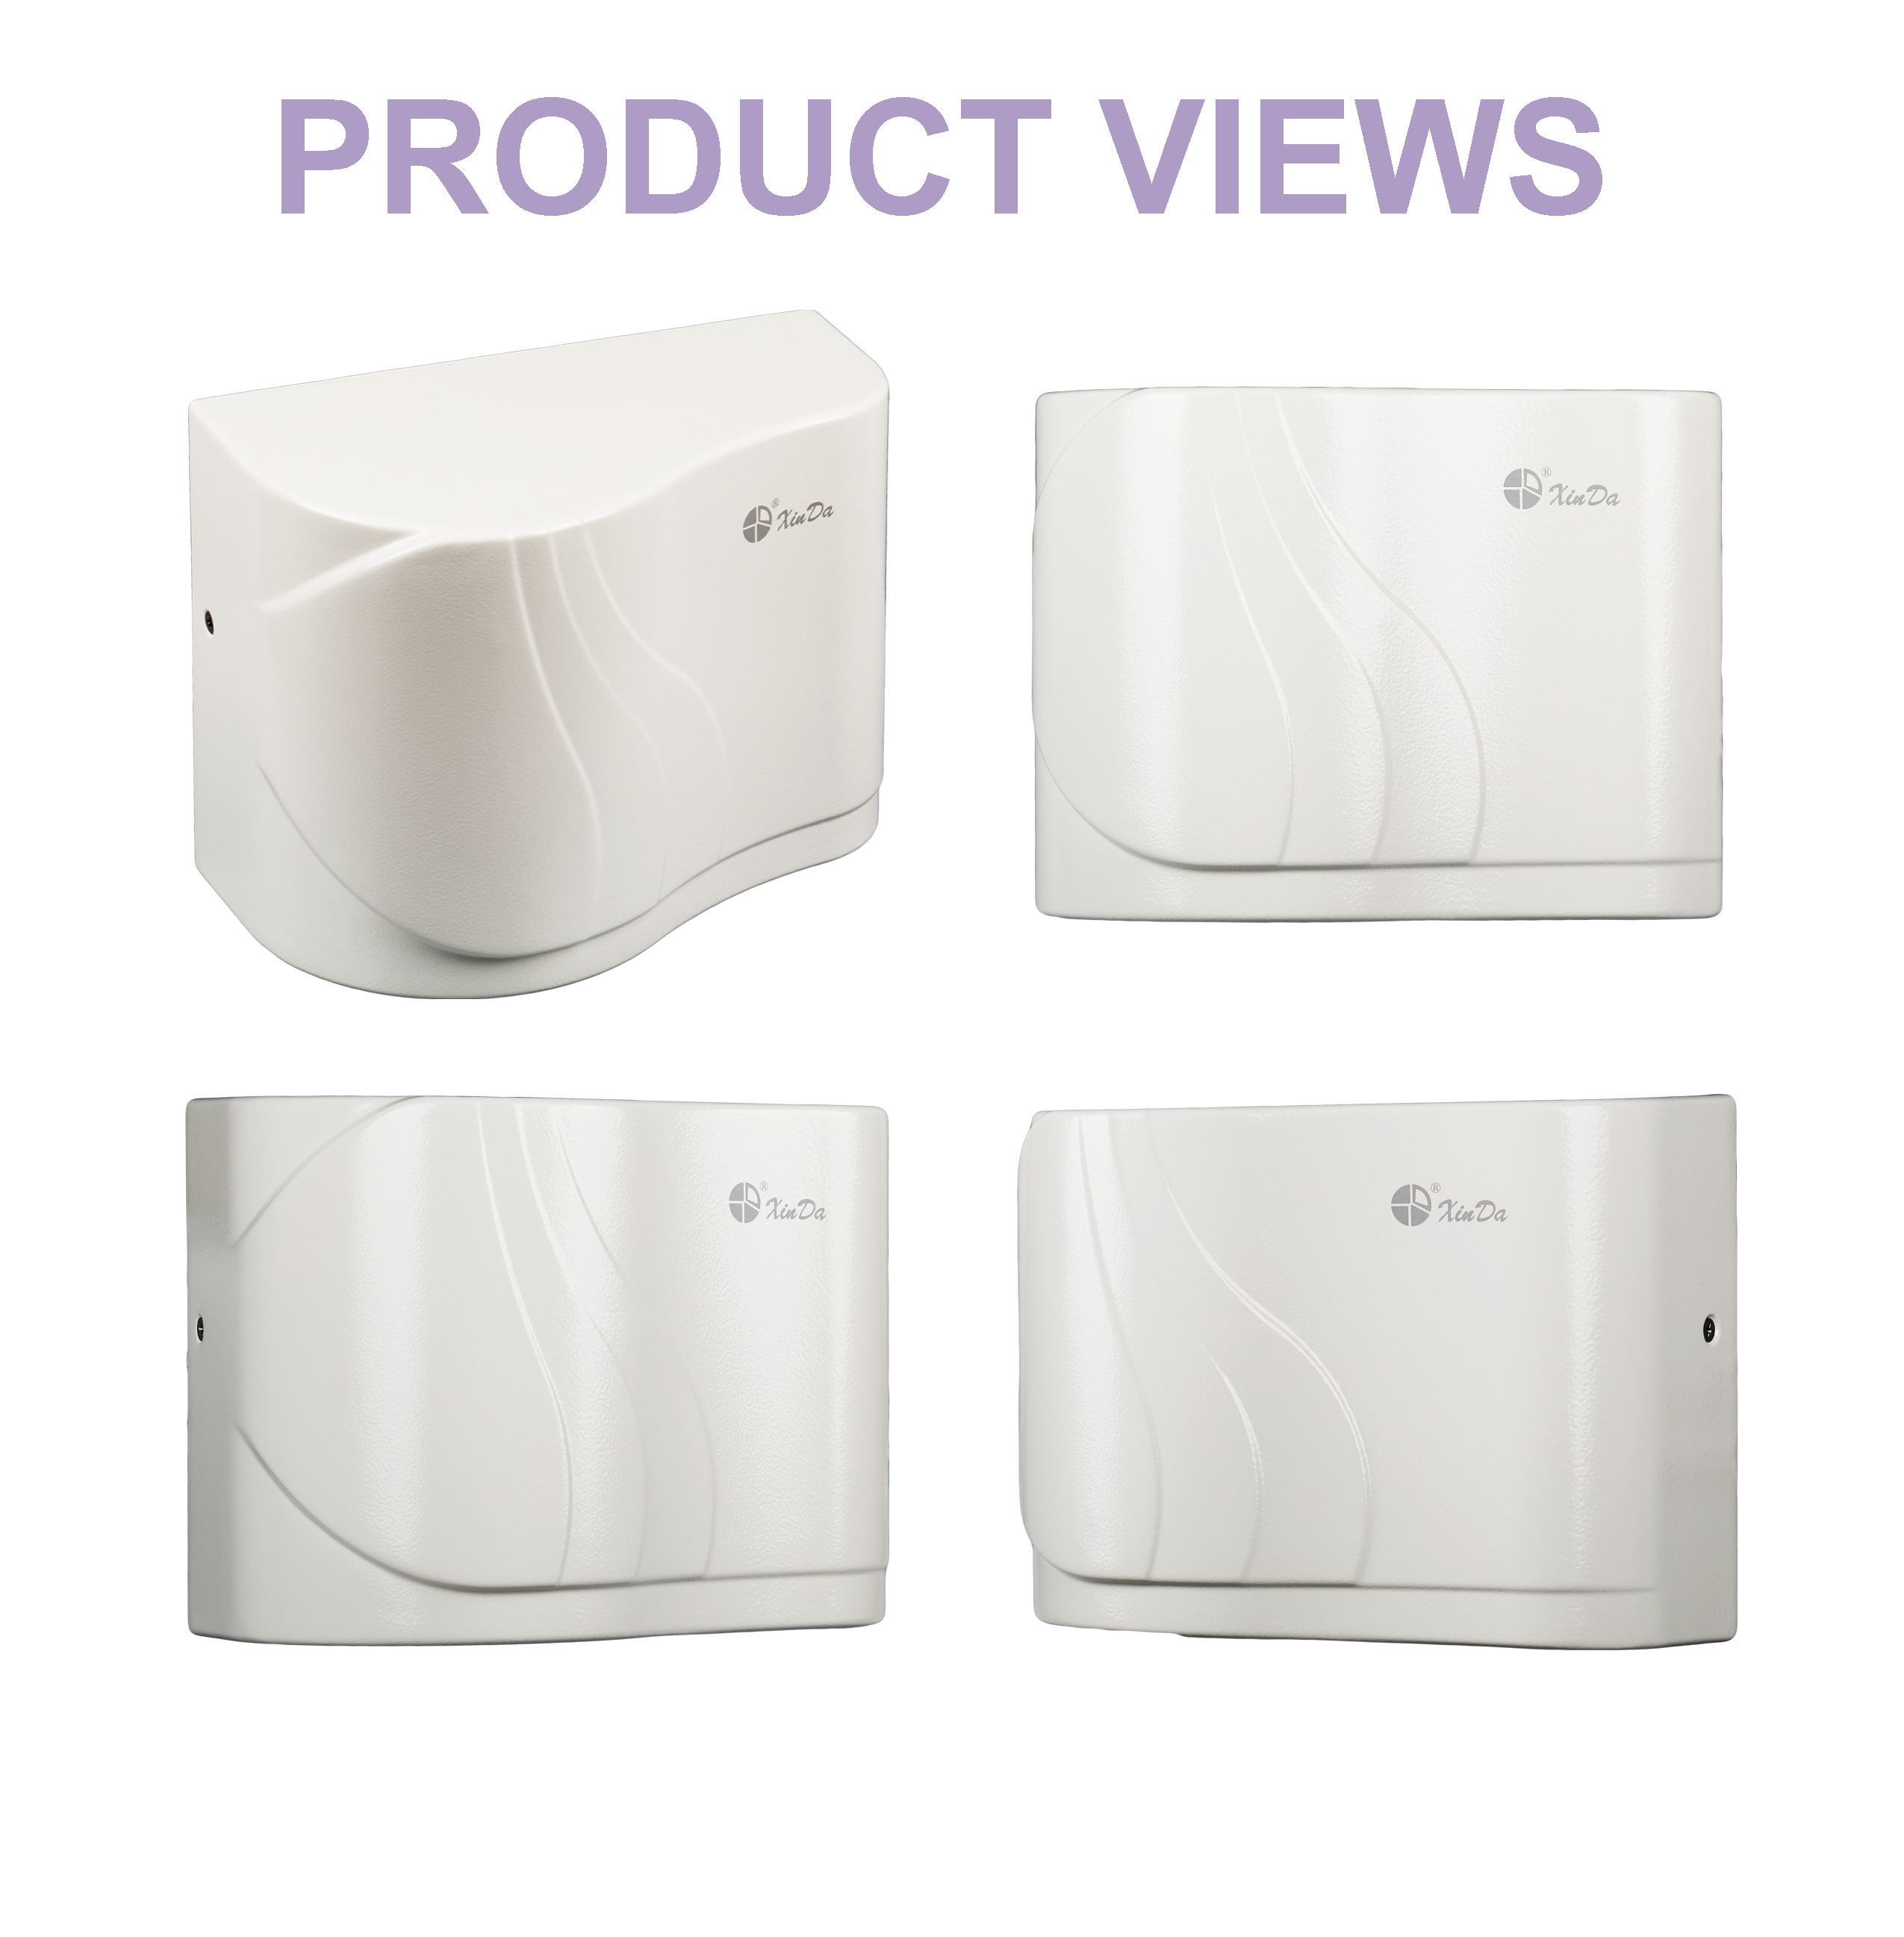 Hand dryer with disinfection function